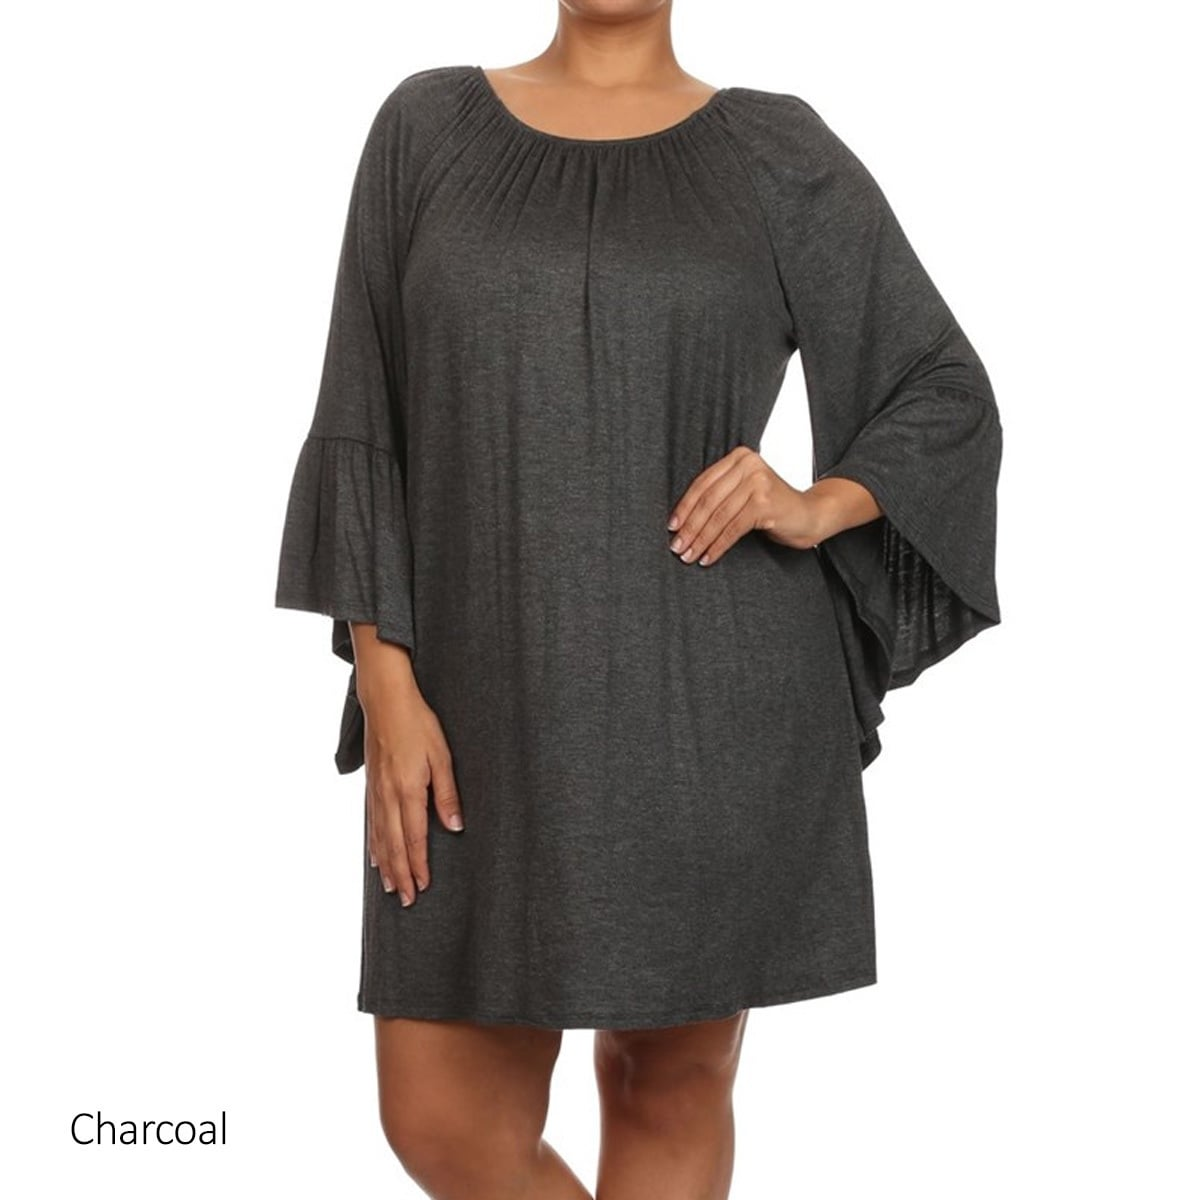 Women\'s Solid Rayon and Spandex Plus-size Loose-fit Dress | eBay